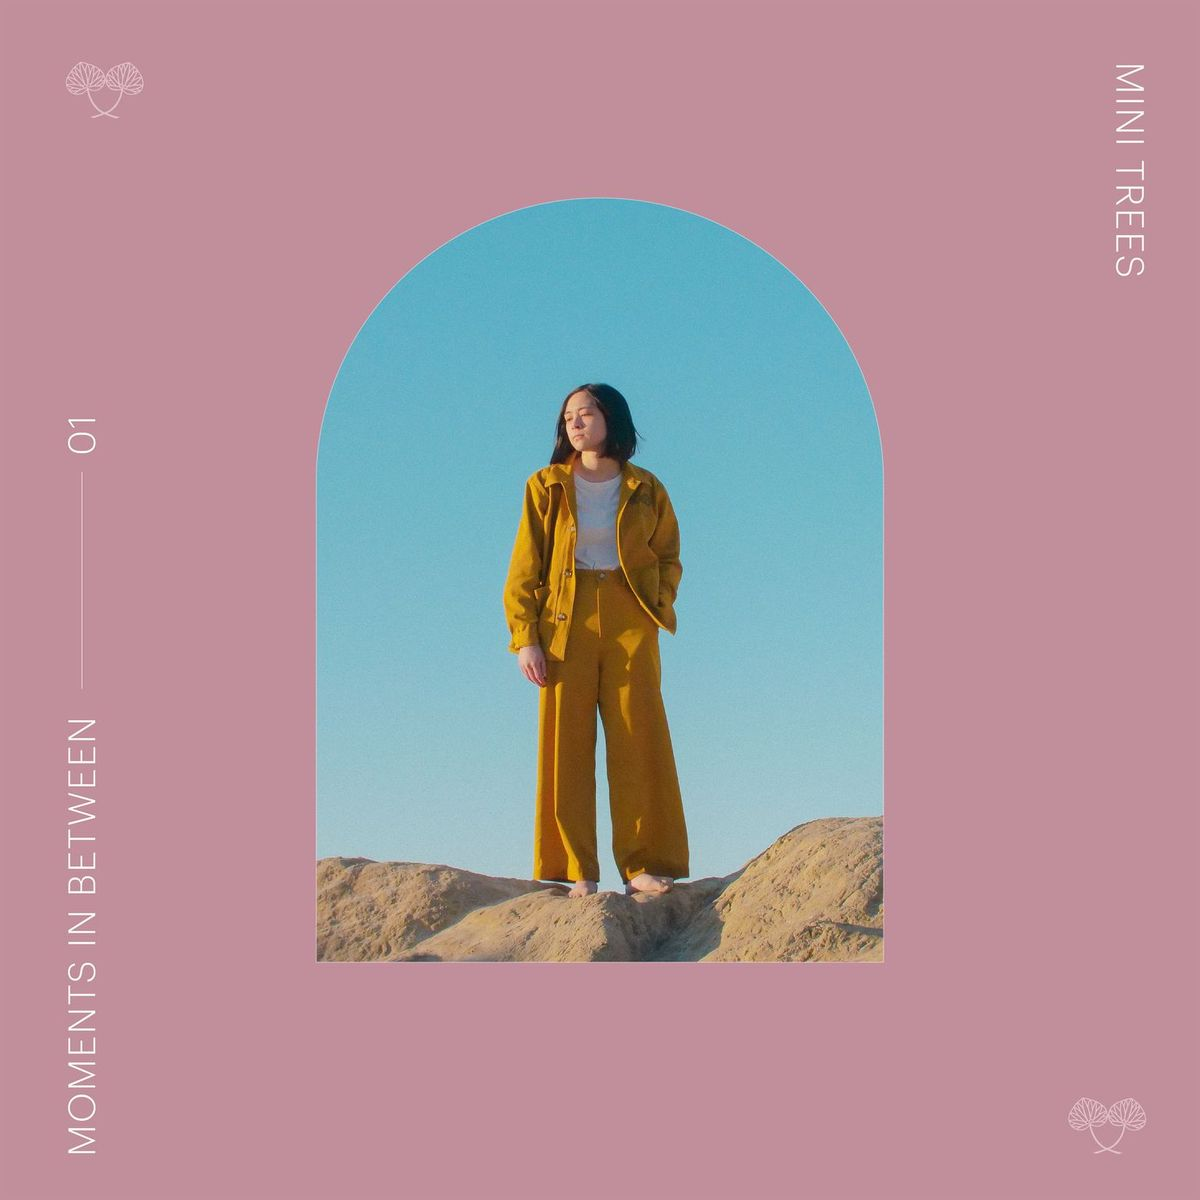 Mini Trees – Moments Inbetween OUT NOW